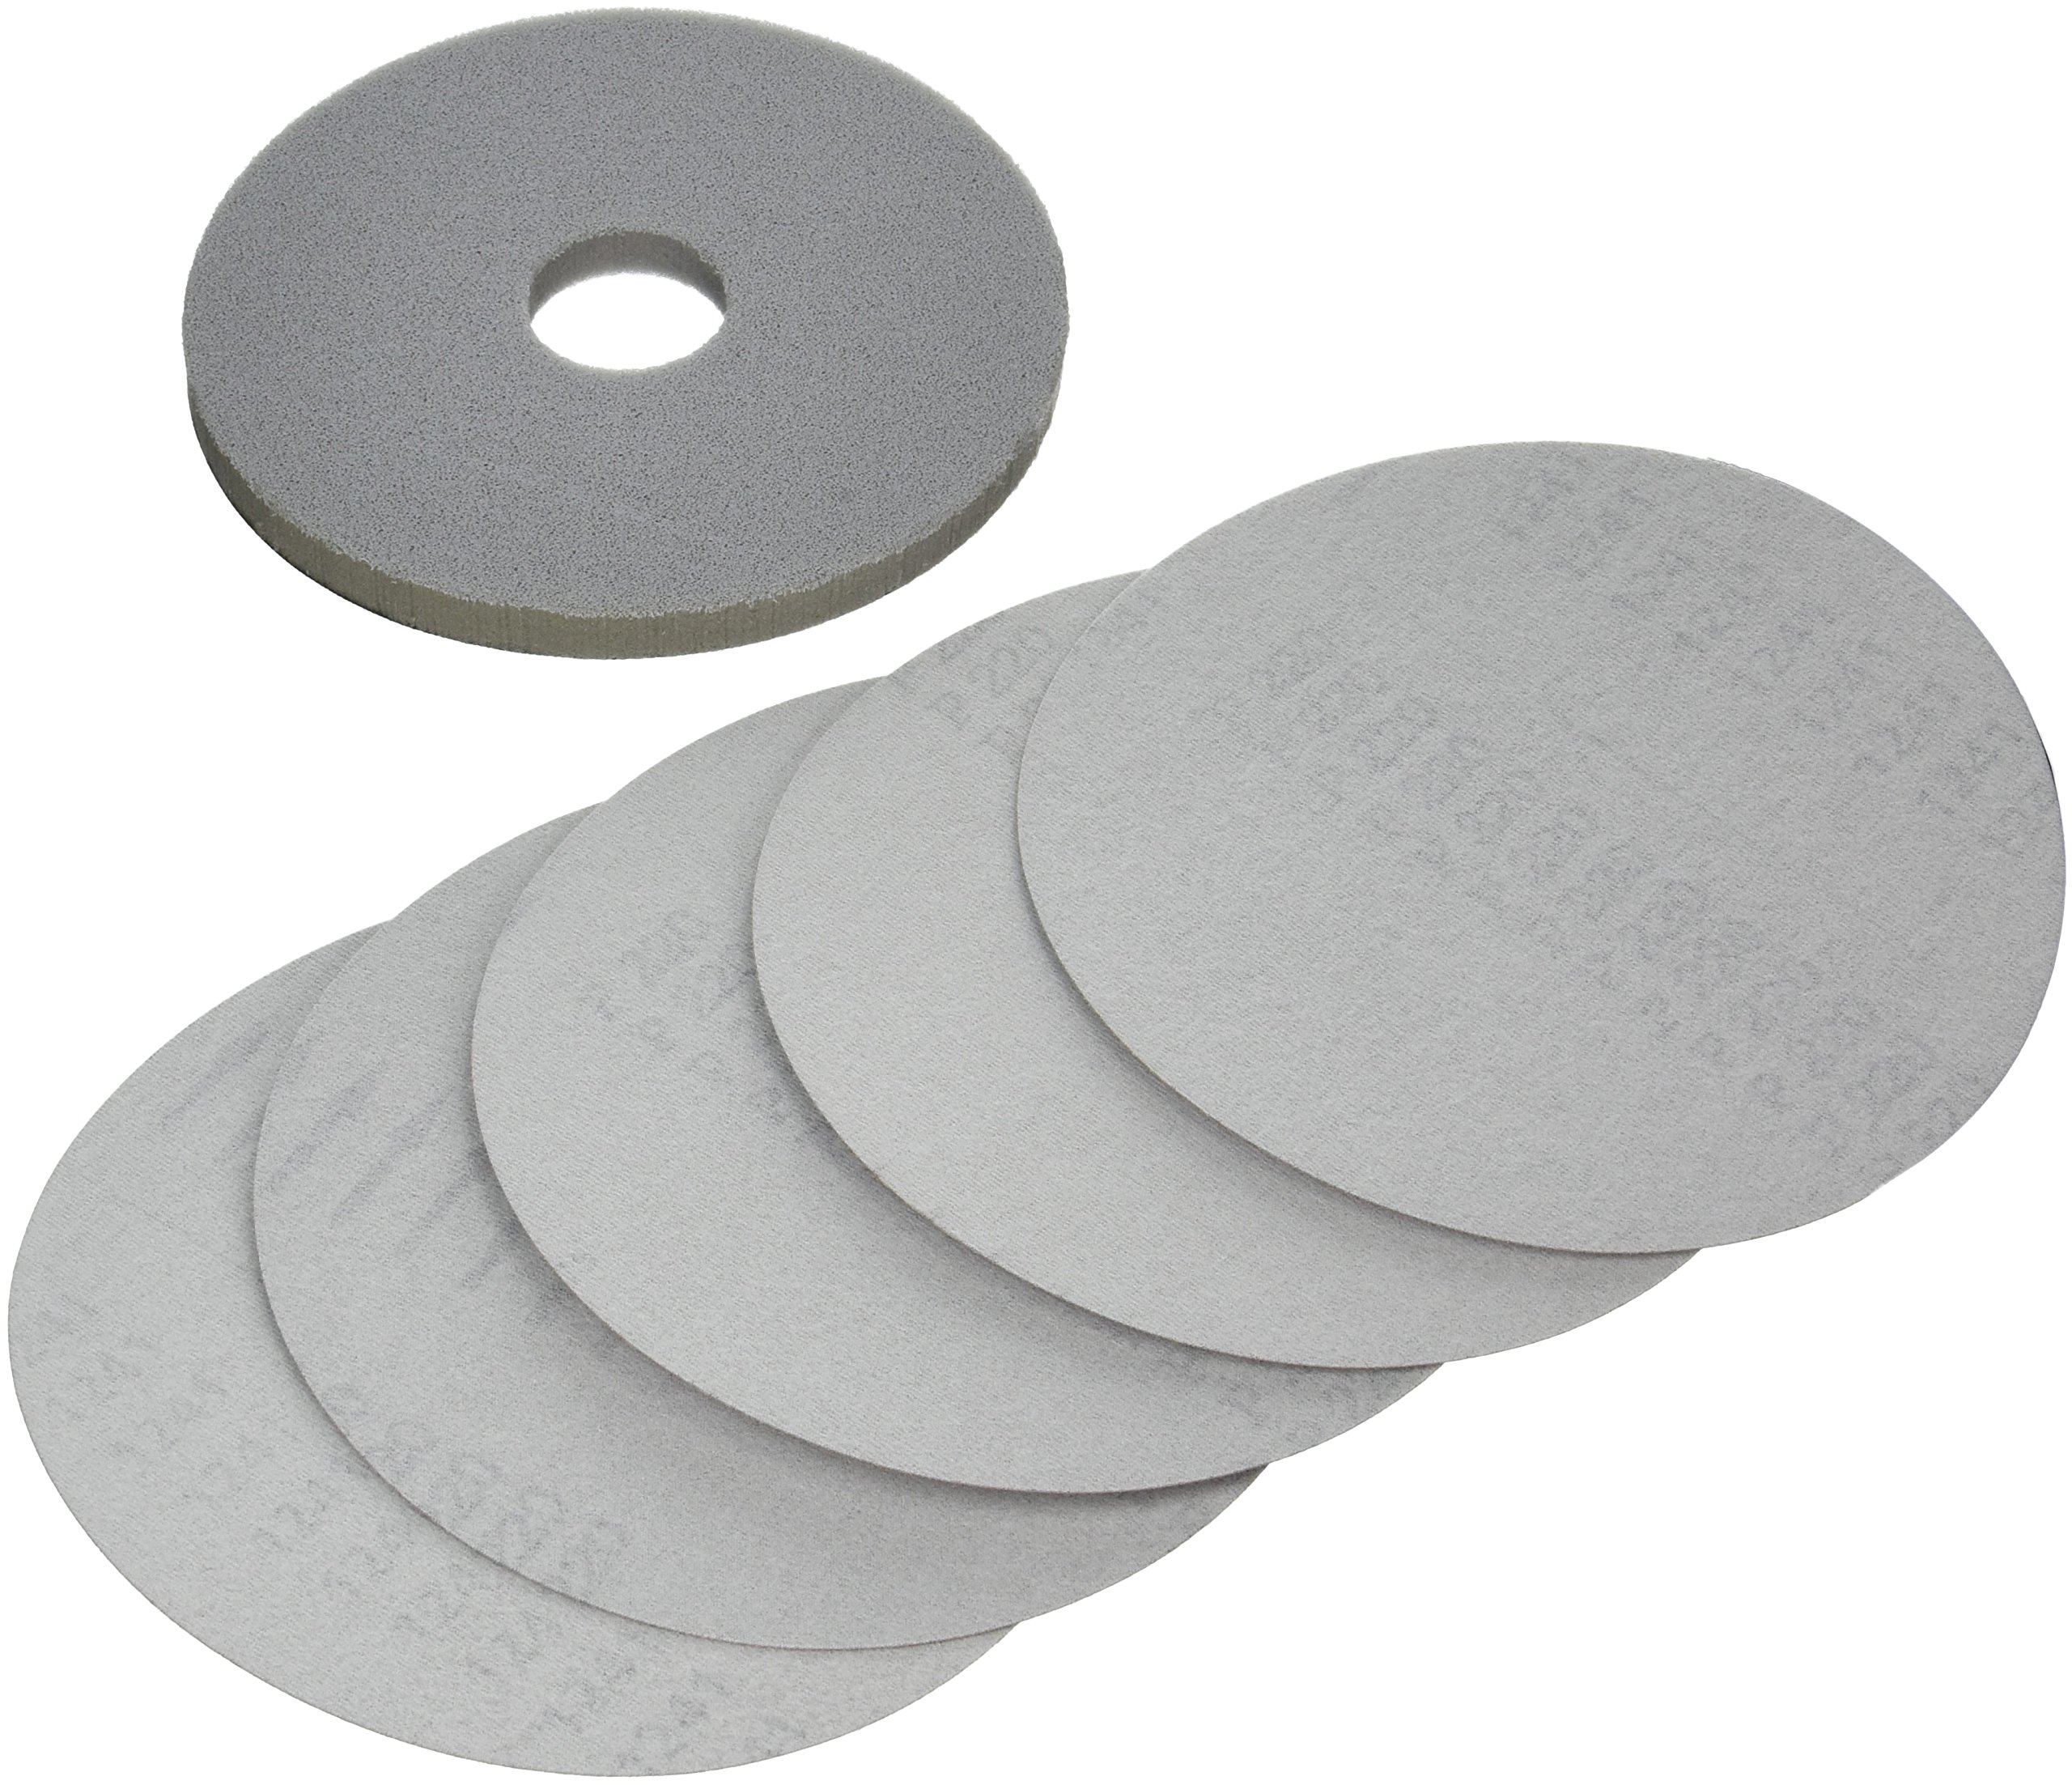 PORTER-CABLE 79220-5 220 Grit Hook & Loop Drywall Sander Pad & Discs (5-Pack) by PORTER-CABLE